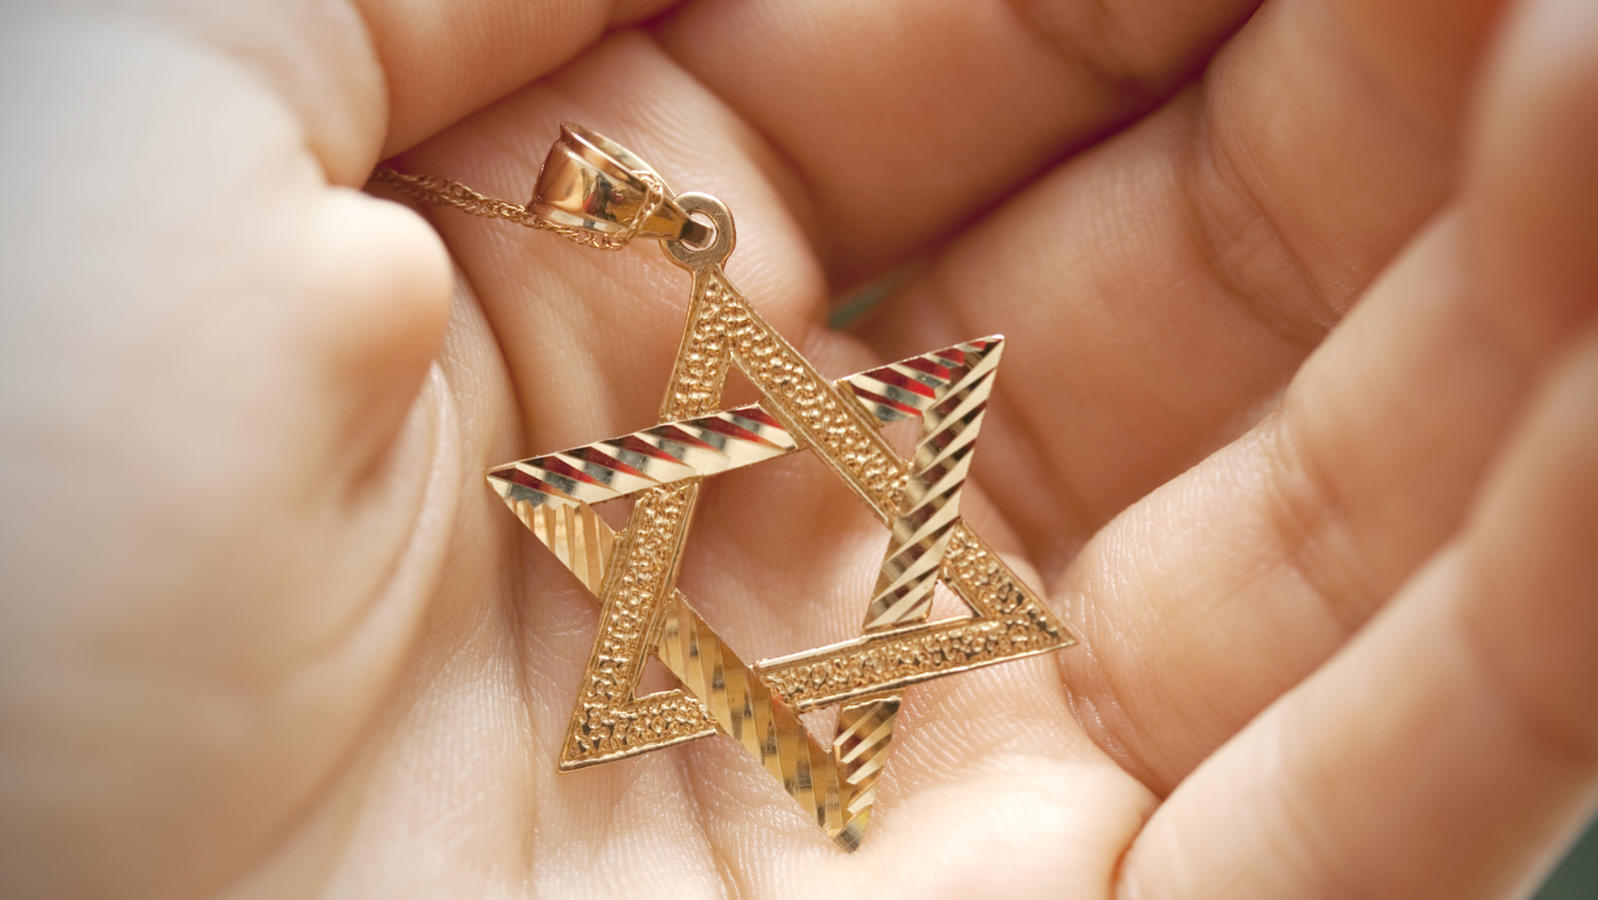 Hand holding Star of David